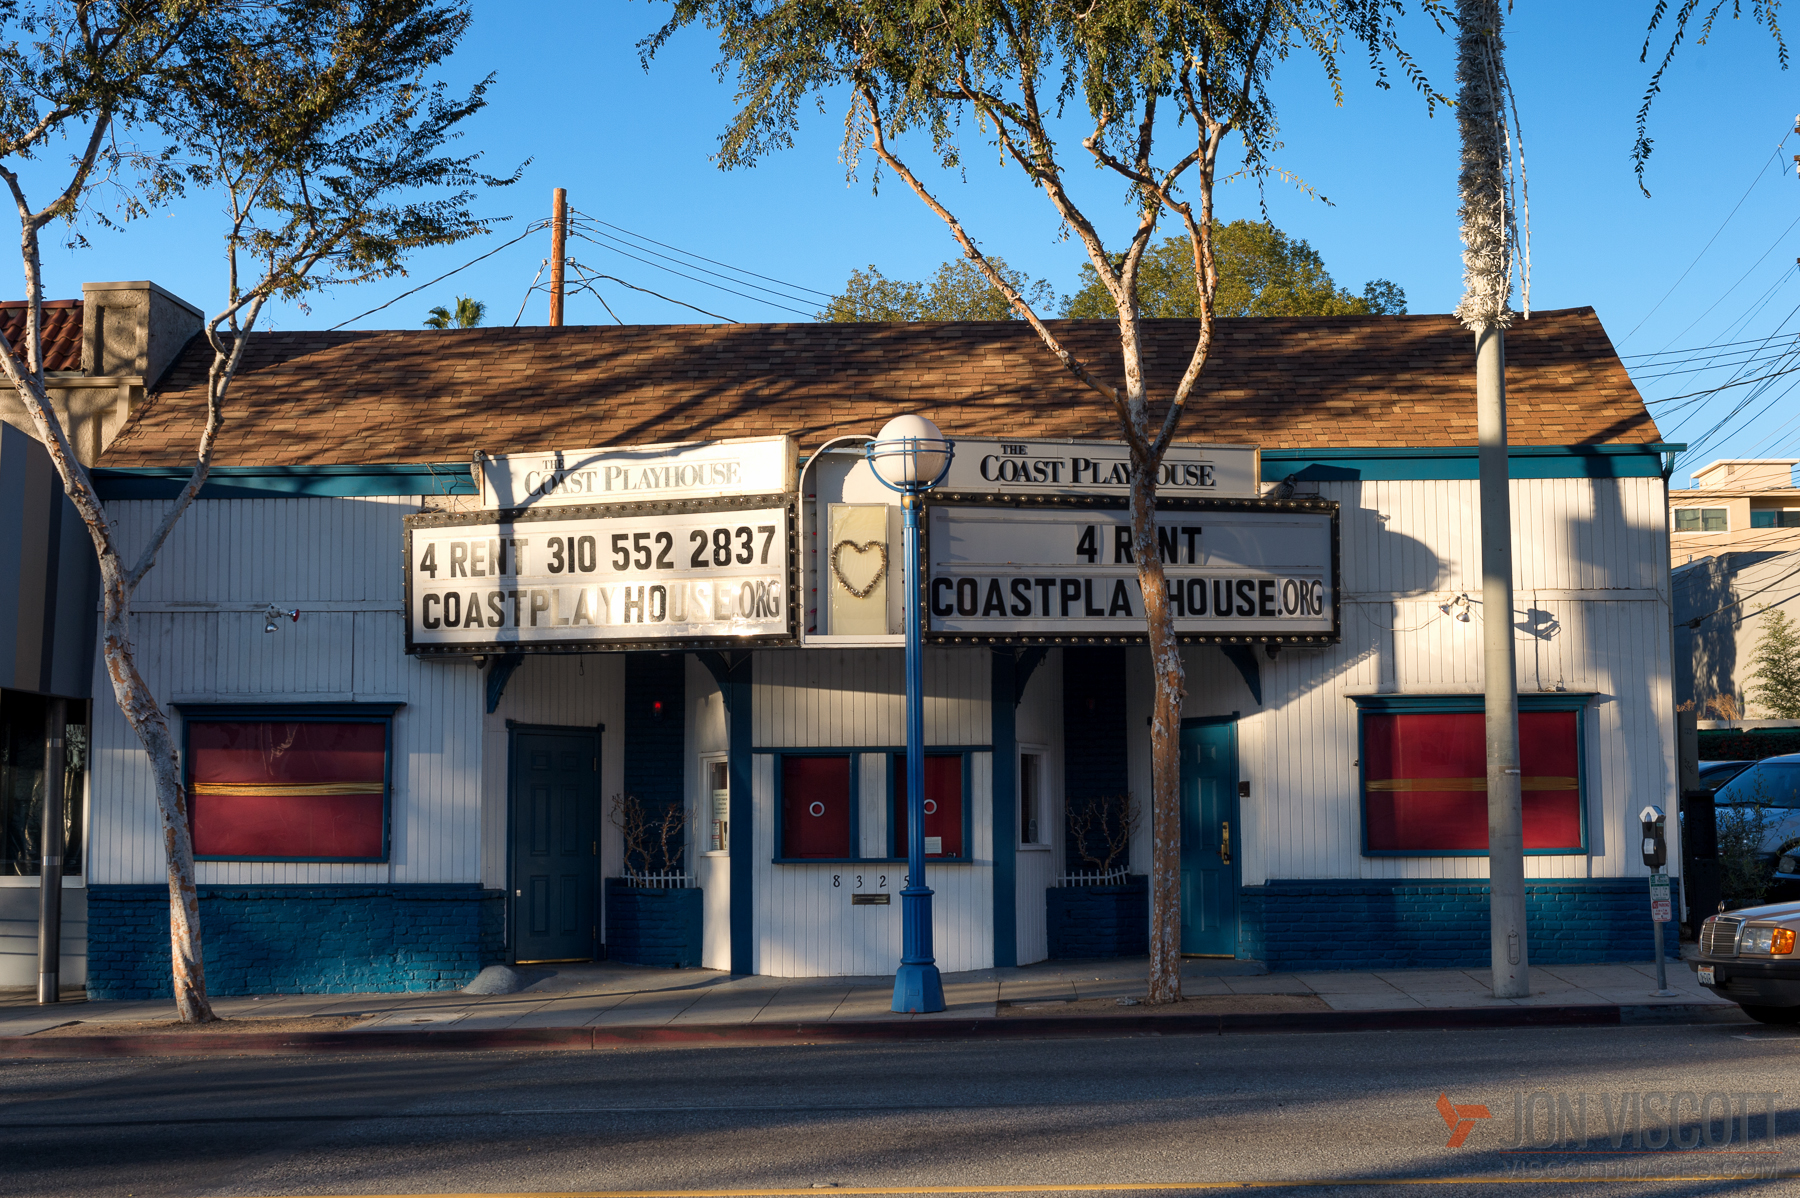 ... now the Coast Playhouse, another WeHo theatre that has bitten the dust (Photo by Jon Viscott)